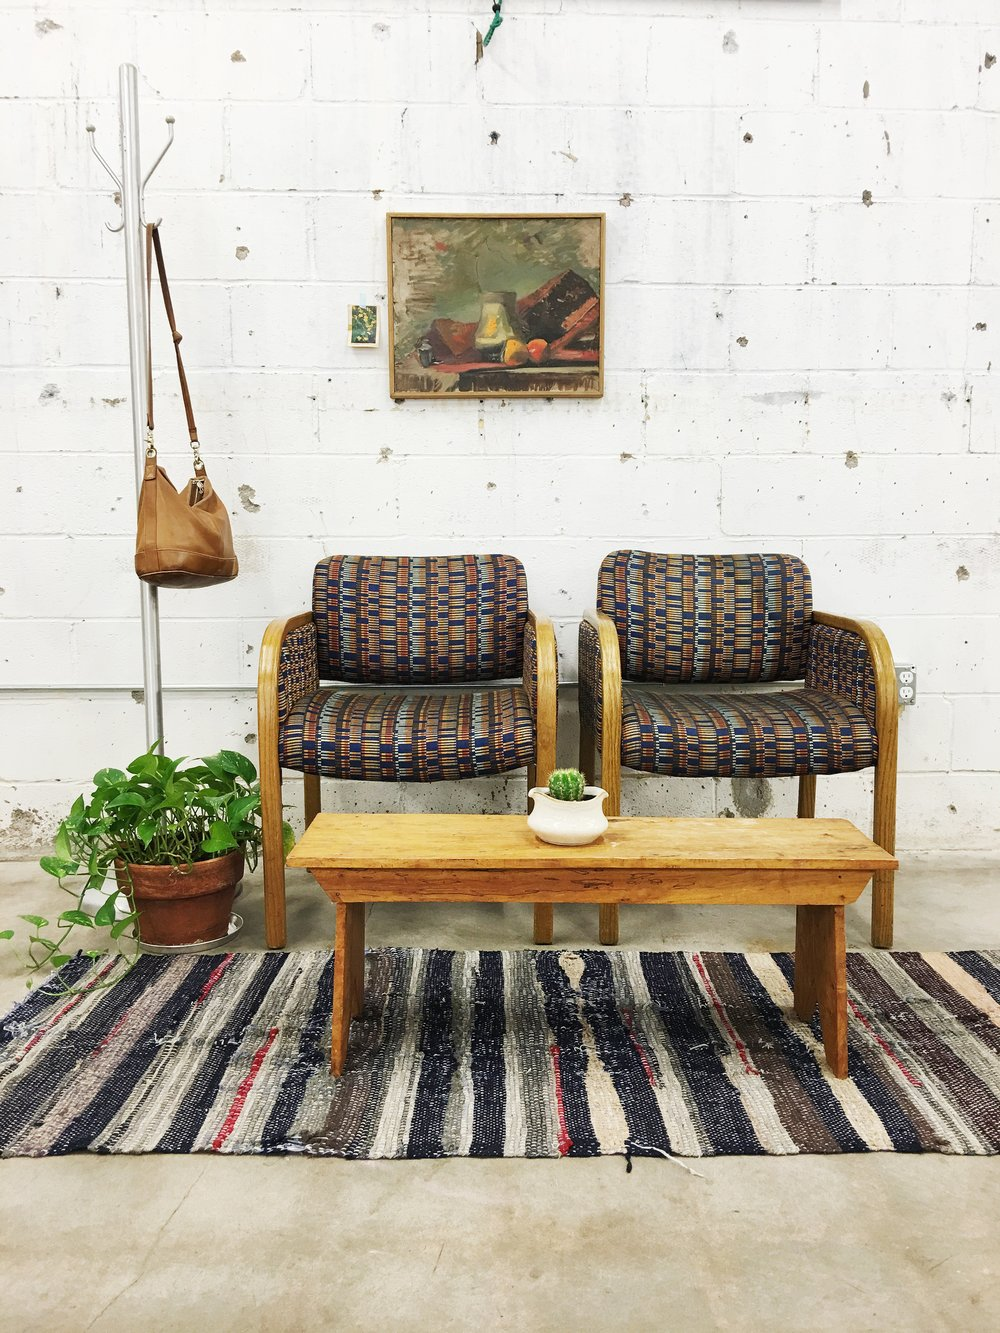 When Ashley Daly posted this scene to Instagram, she described it as feeling like it went together like a warm stew. I think she's correct. The colors from the striped rag rug, the 80s patterned chairs, and the vintage oil painting meld warmly together.